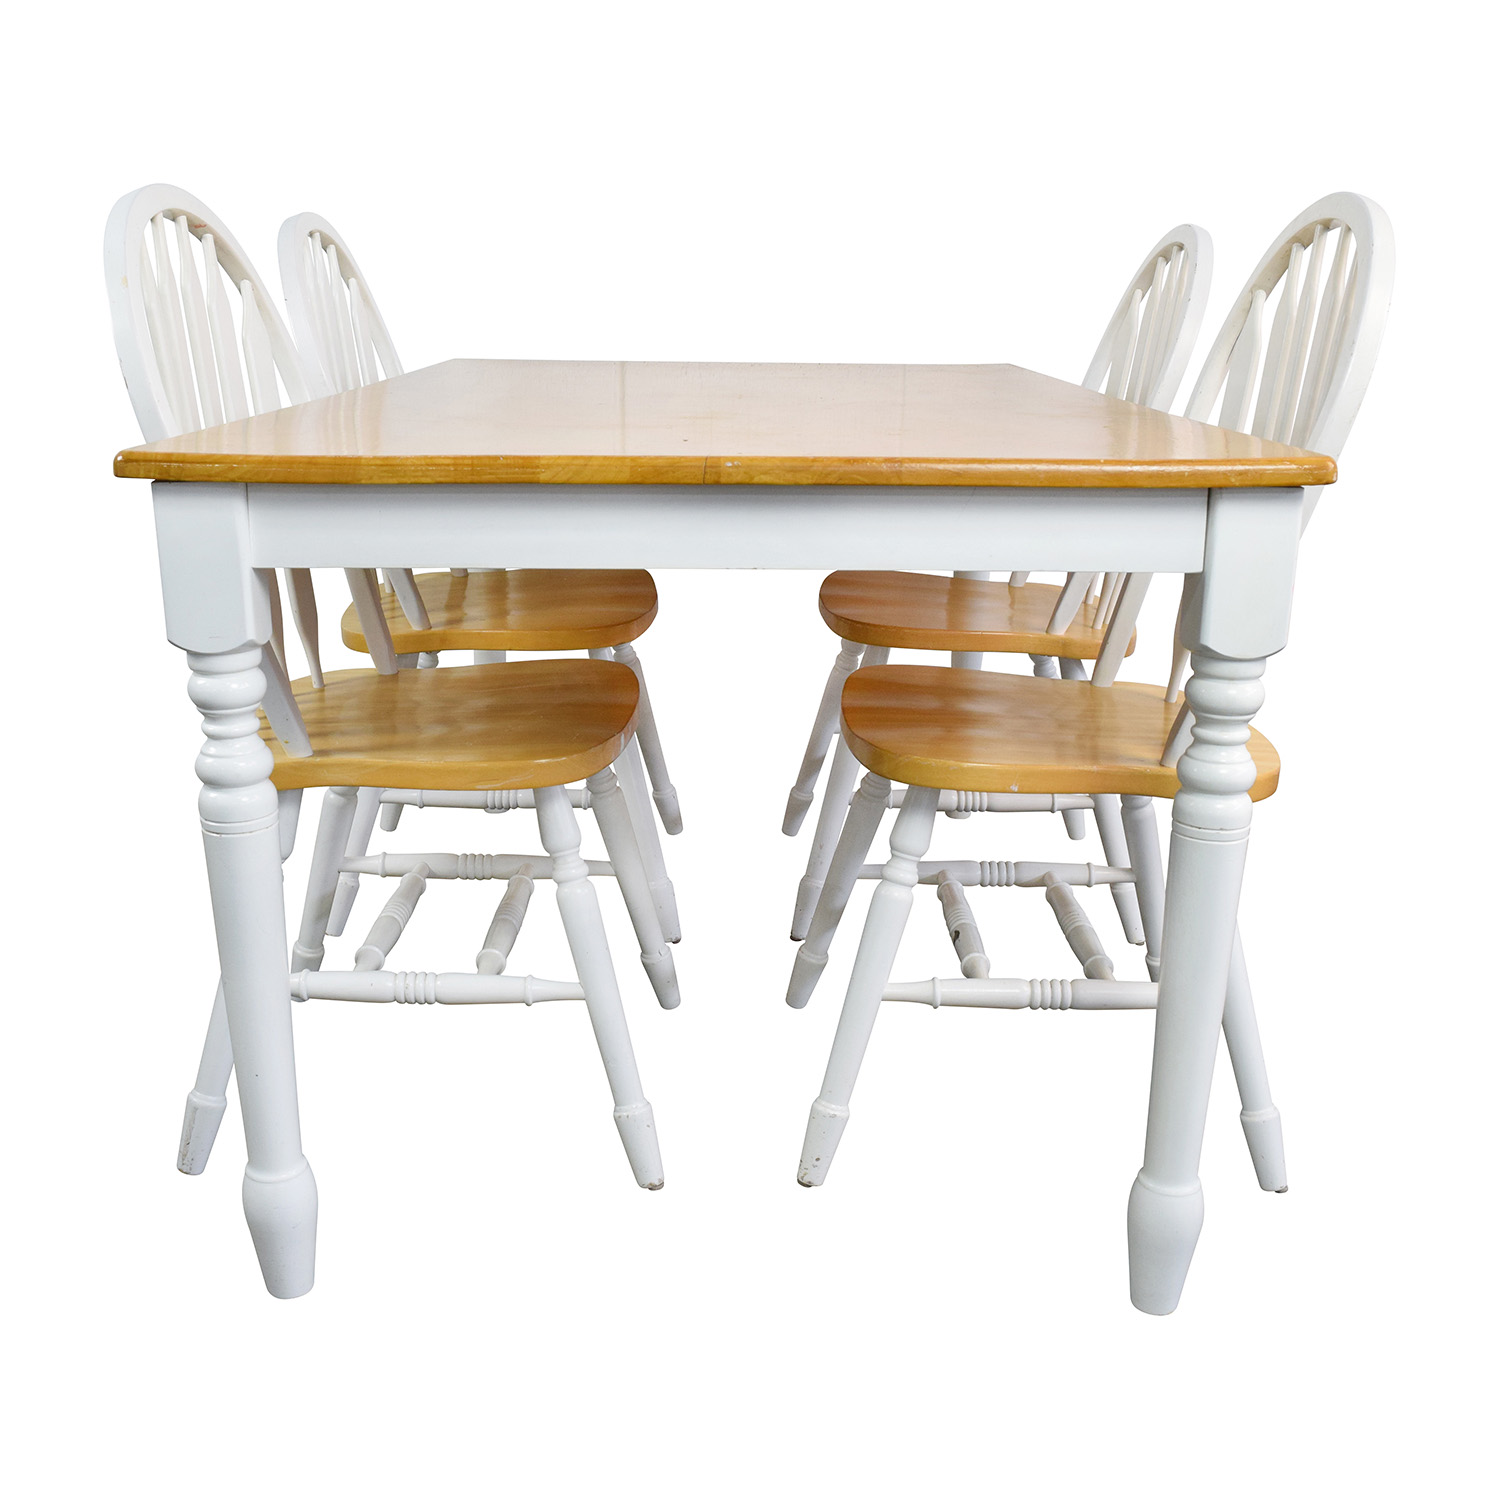 shop White and Natural Wood Color Dining set